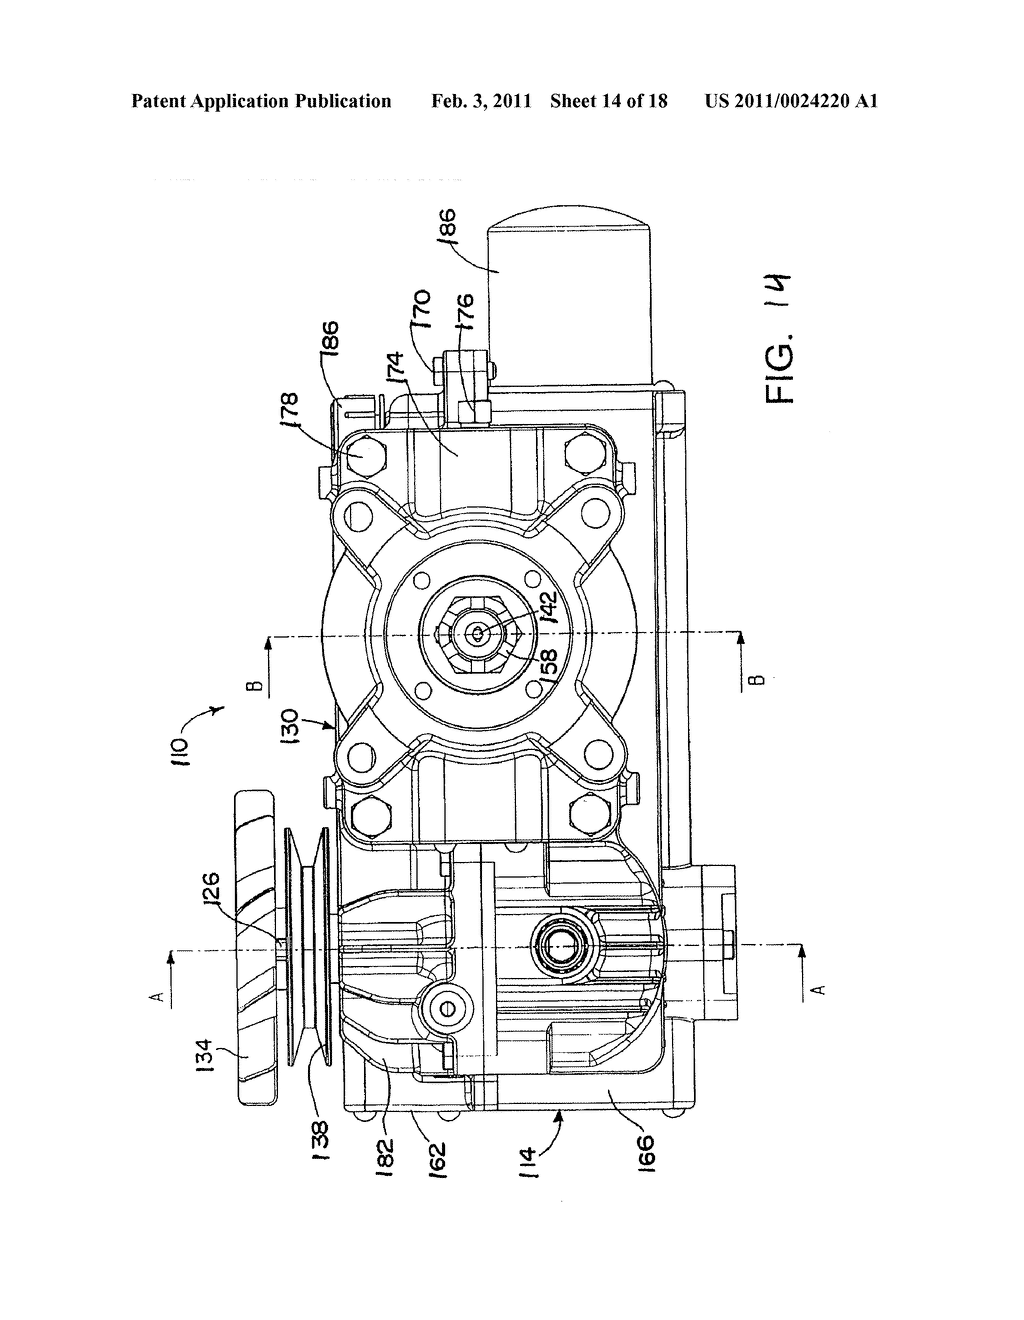 hight resolution of mounting of hydrostatic transmission for riding lawn mower diagram schematic and image 15